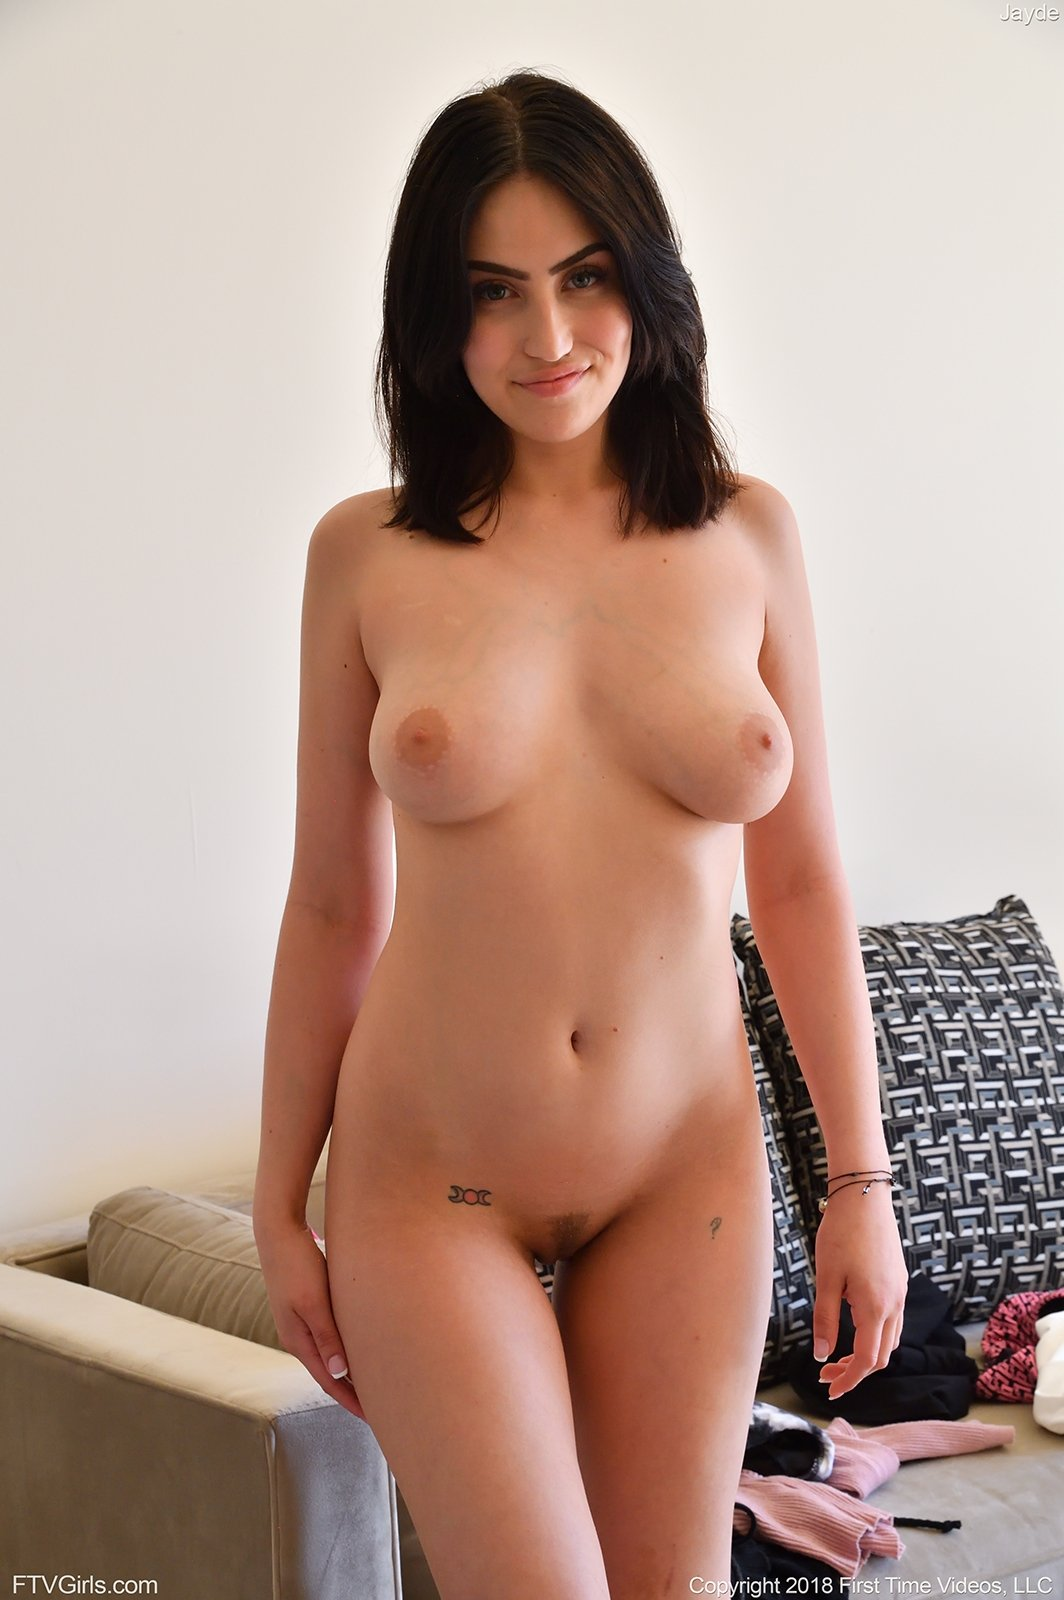 Sexy hot girls that are naked Husband porn nipple slip